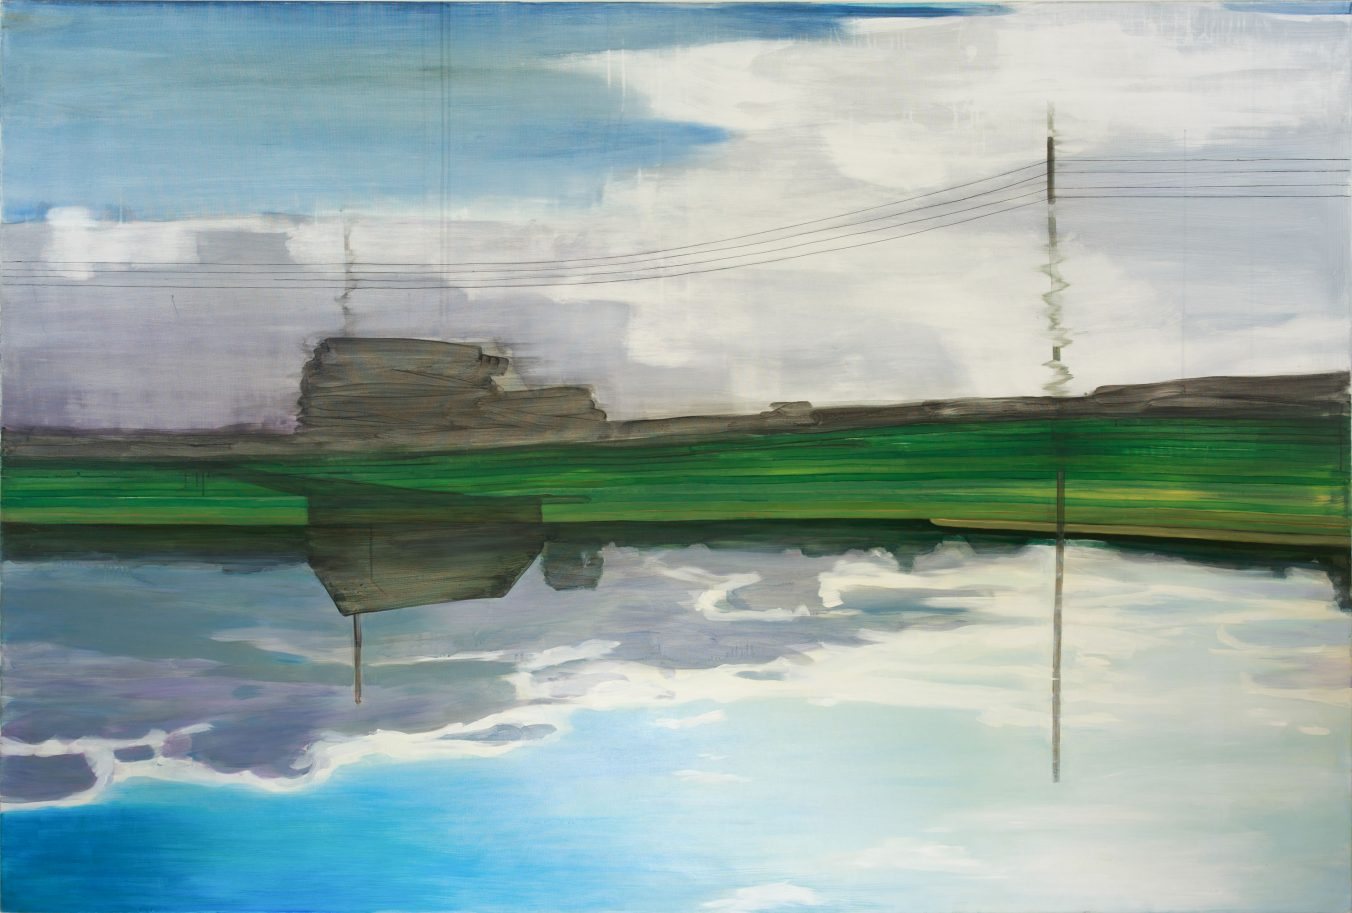 Reminiscences 11-11 (Summer) 2011 135cm x 200cm Acrylic, Canvas